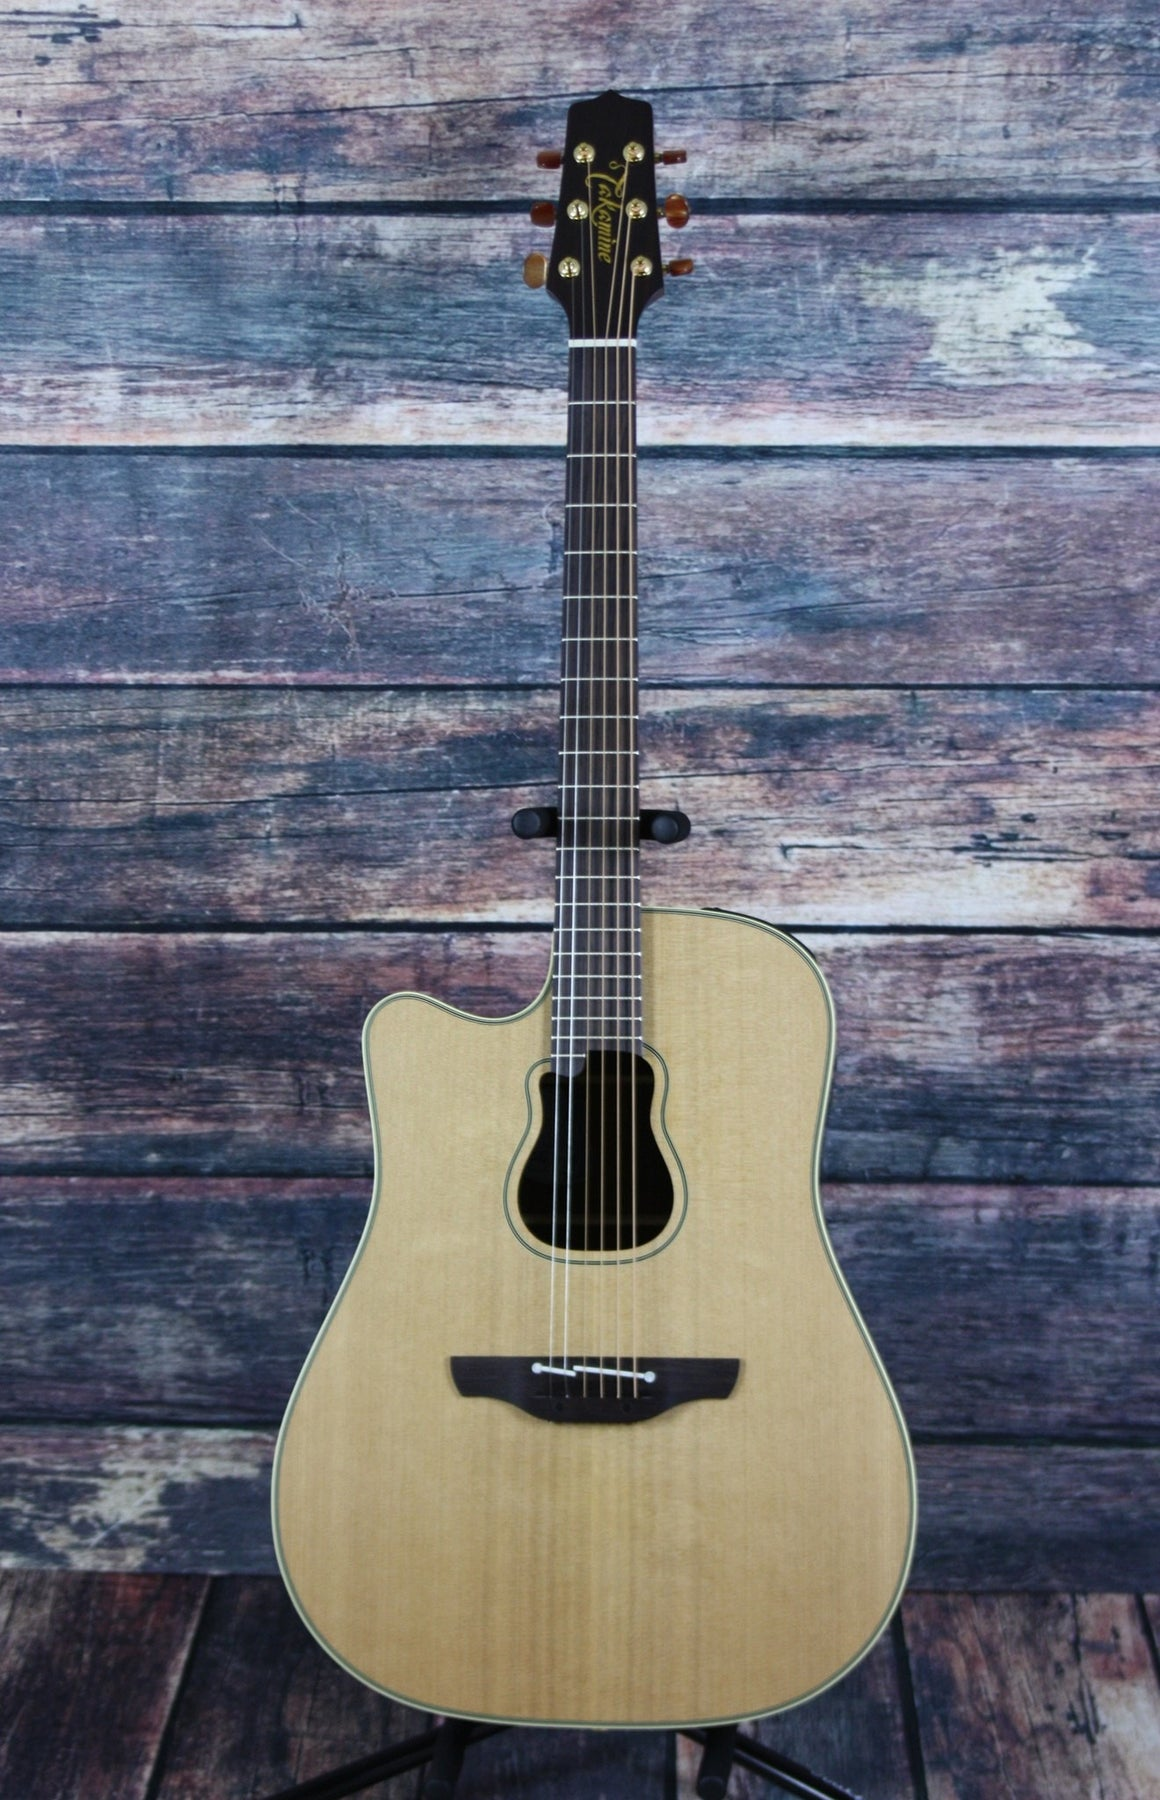 Takamine Acoustic Electric Guitar Takamine Left Handed GB7 Garth Brooks Signature Acoustic Electric Guitar